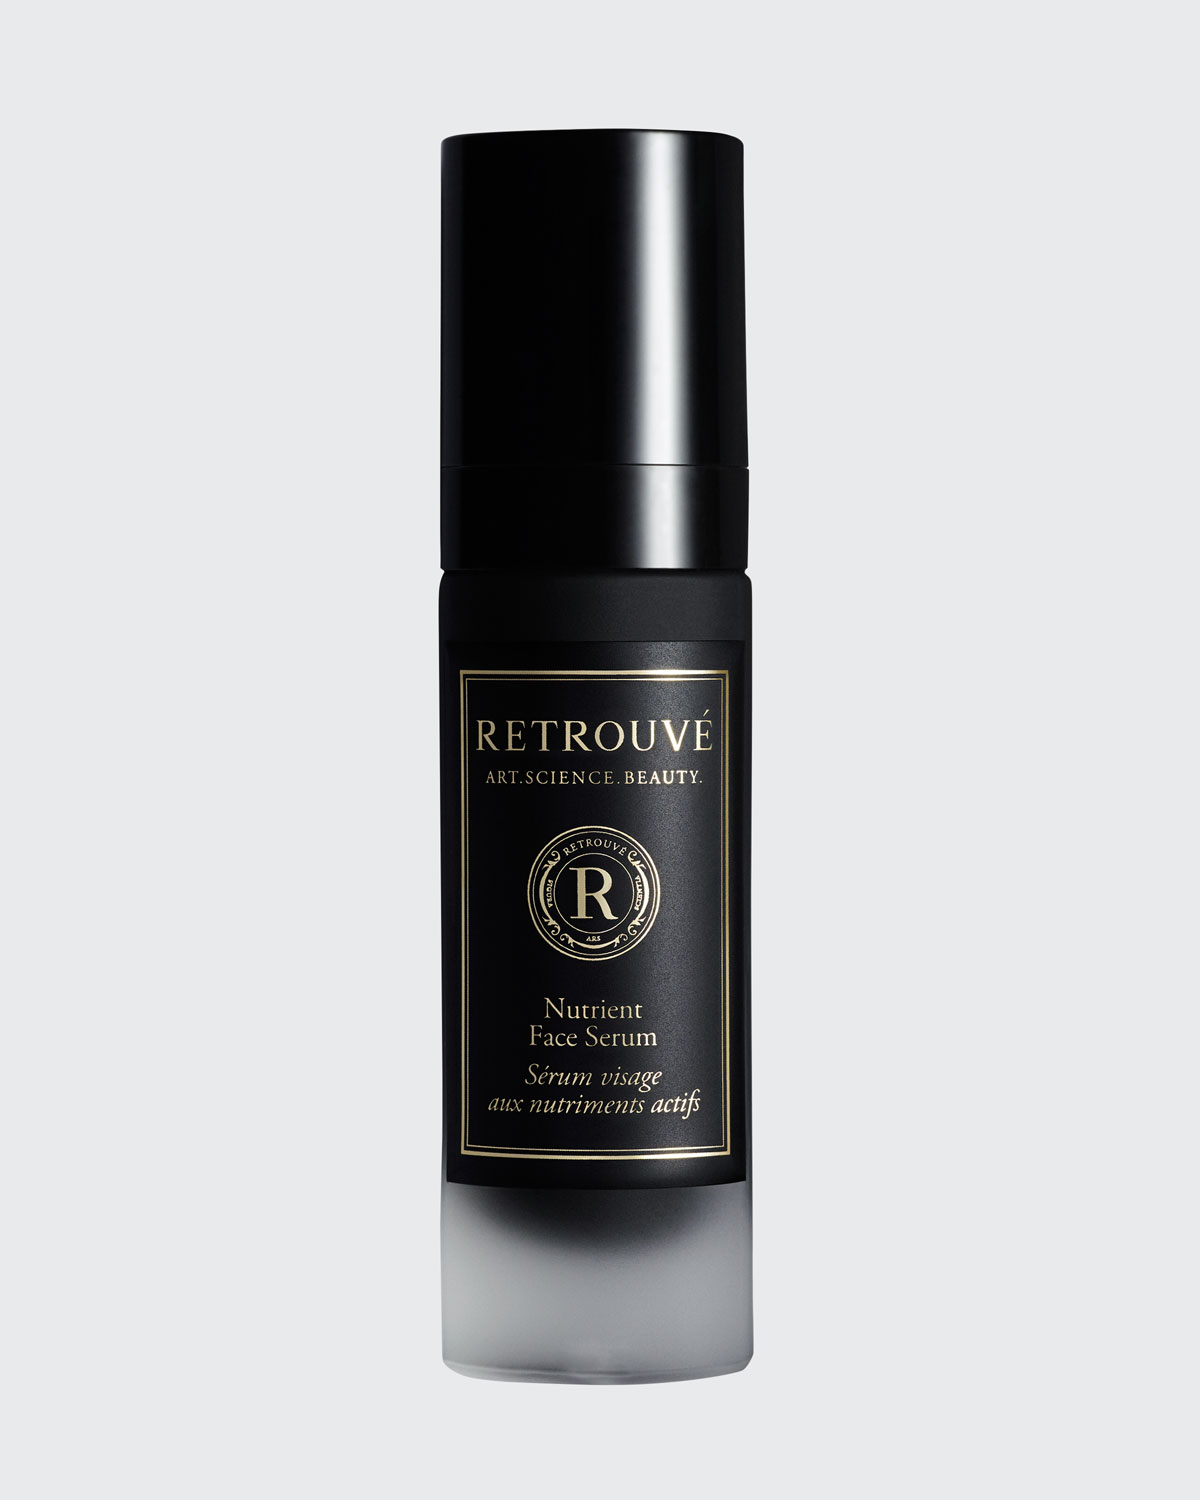 RETROUVE Nutrient Face Serum, 1.0 Oz.